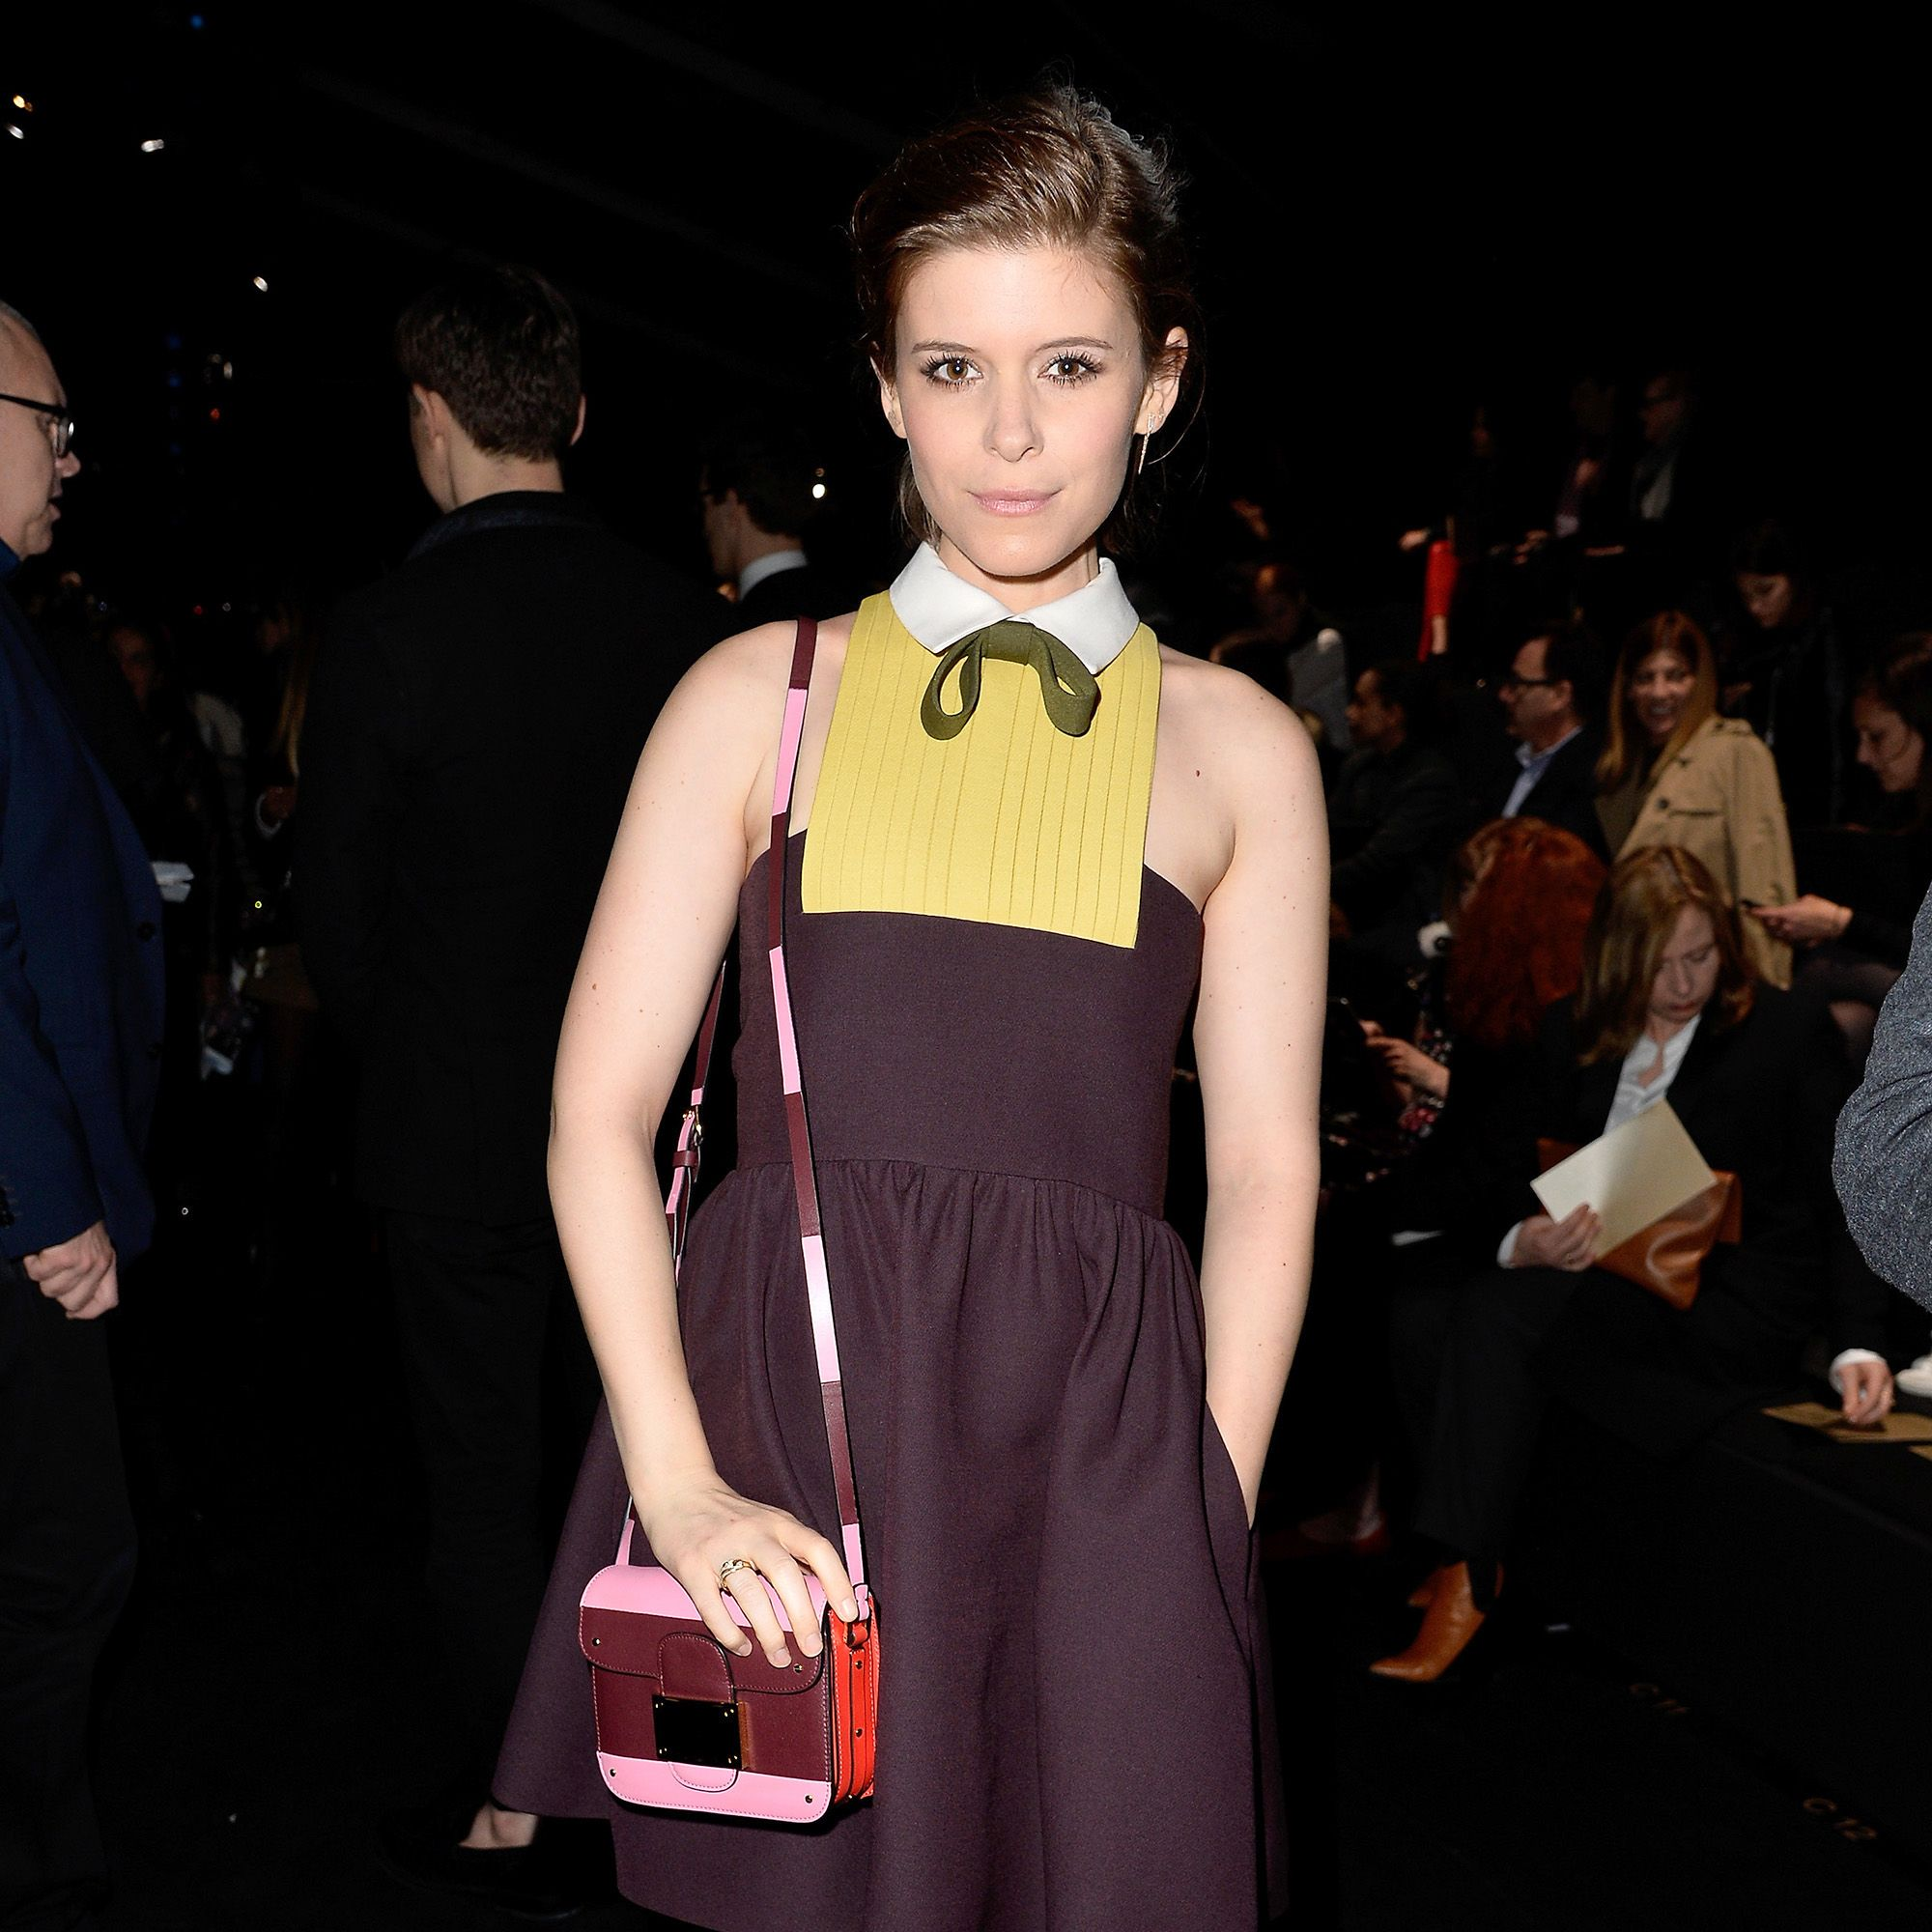 PARIS, FRANCE - MARCH 10: Kate Mara attends the Valentino show as part of the Paris Fashion Week Womenswear Fall/Winter 2015/2016 on March 10, 2015 in Paris, France.  (Photo by Pascal Le Segretain/Getty Images)